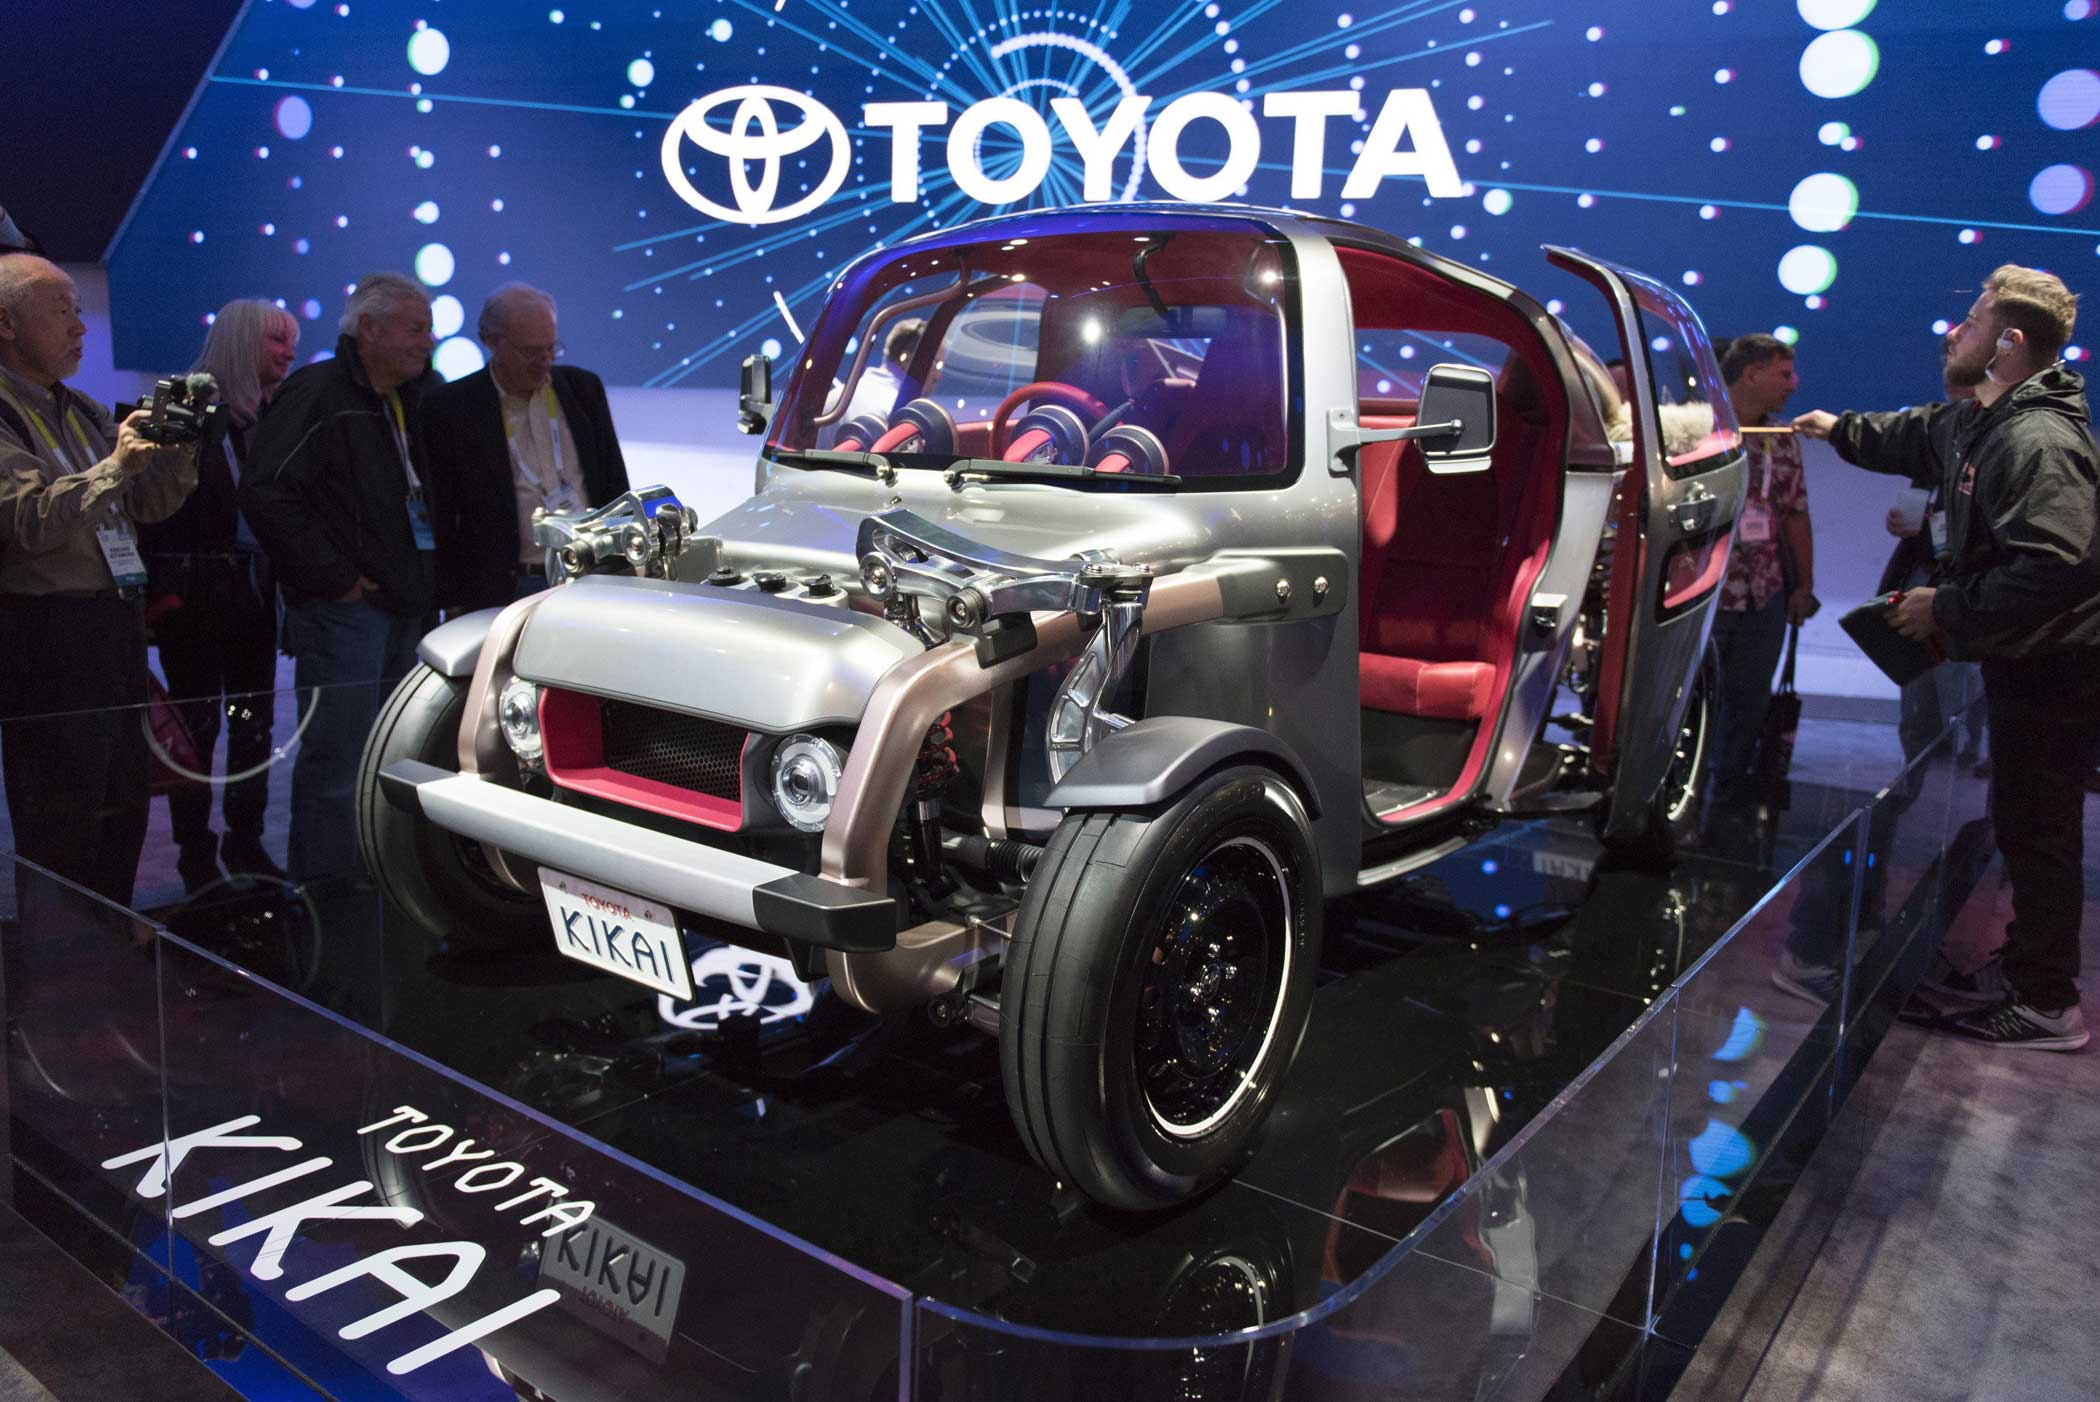 The Toyota Kikai, built inside-out to show off how cars function.